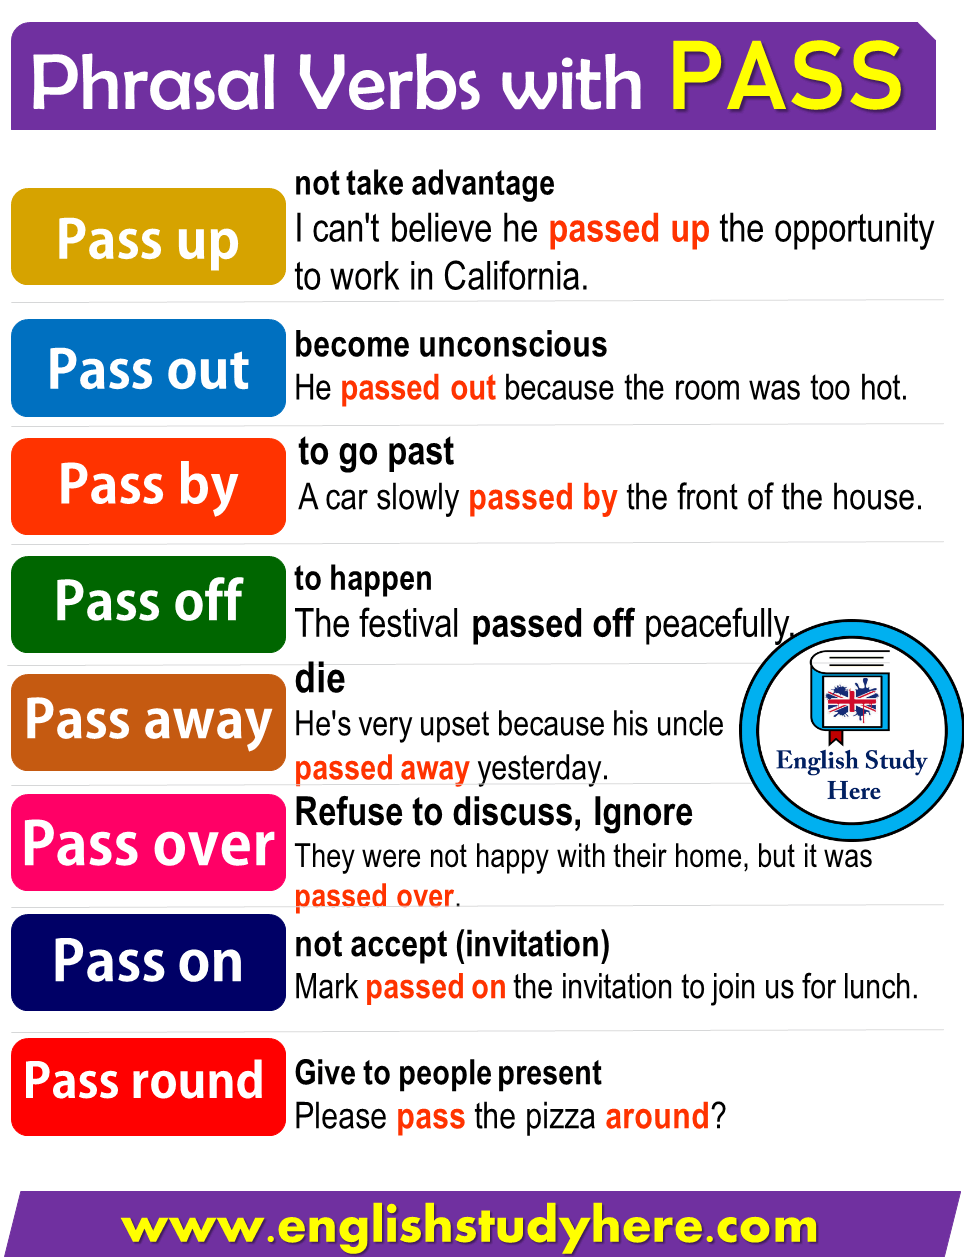 Phrasal Verbs with PASS